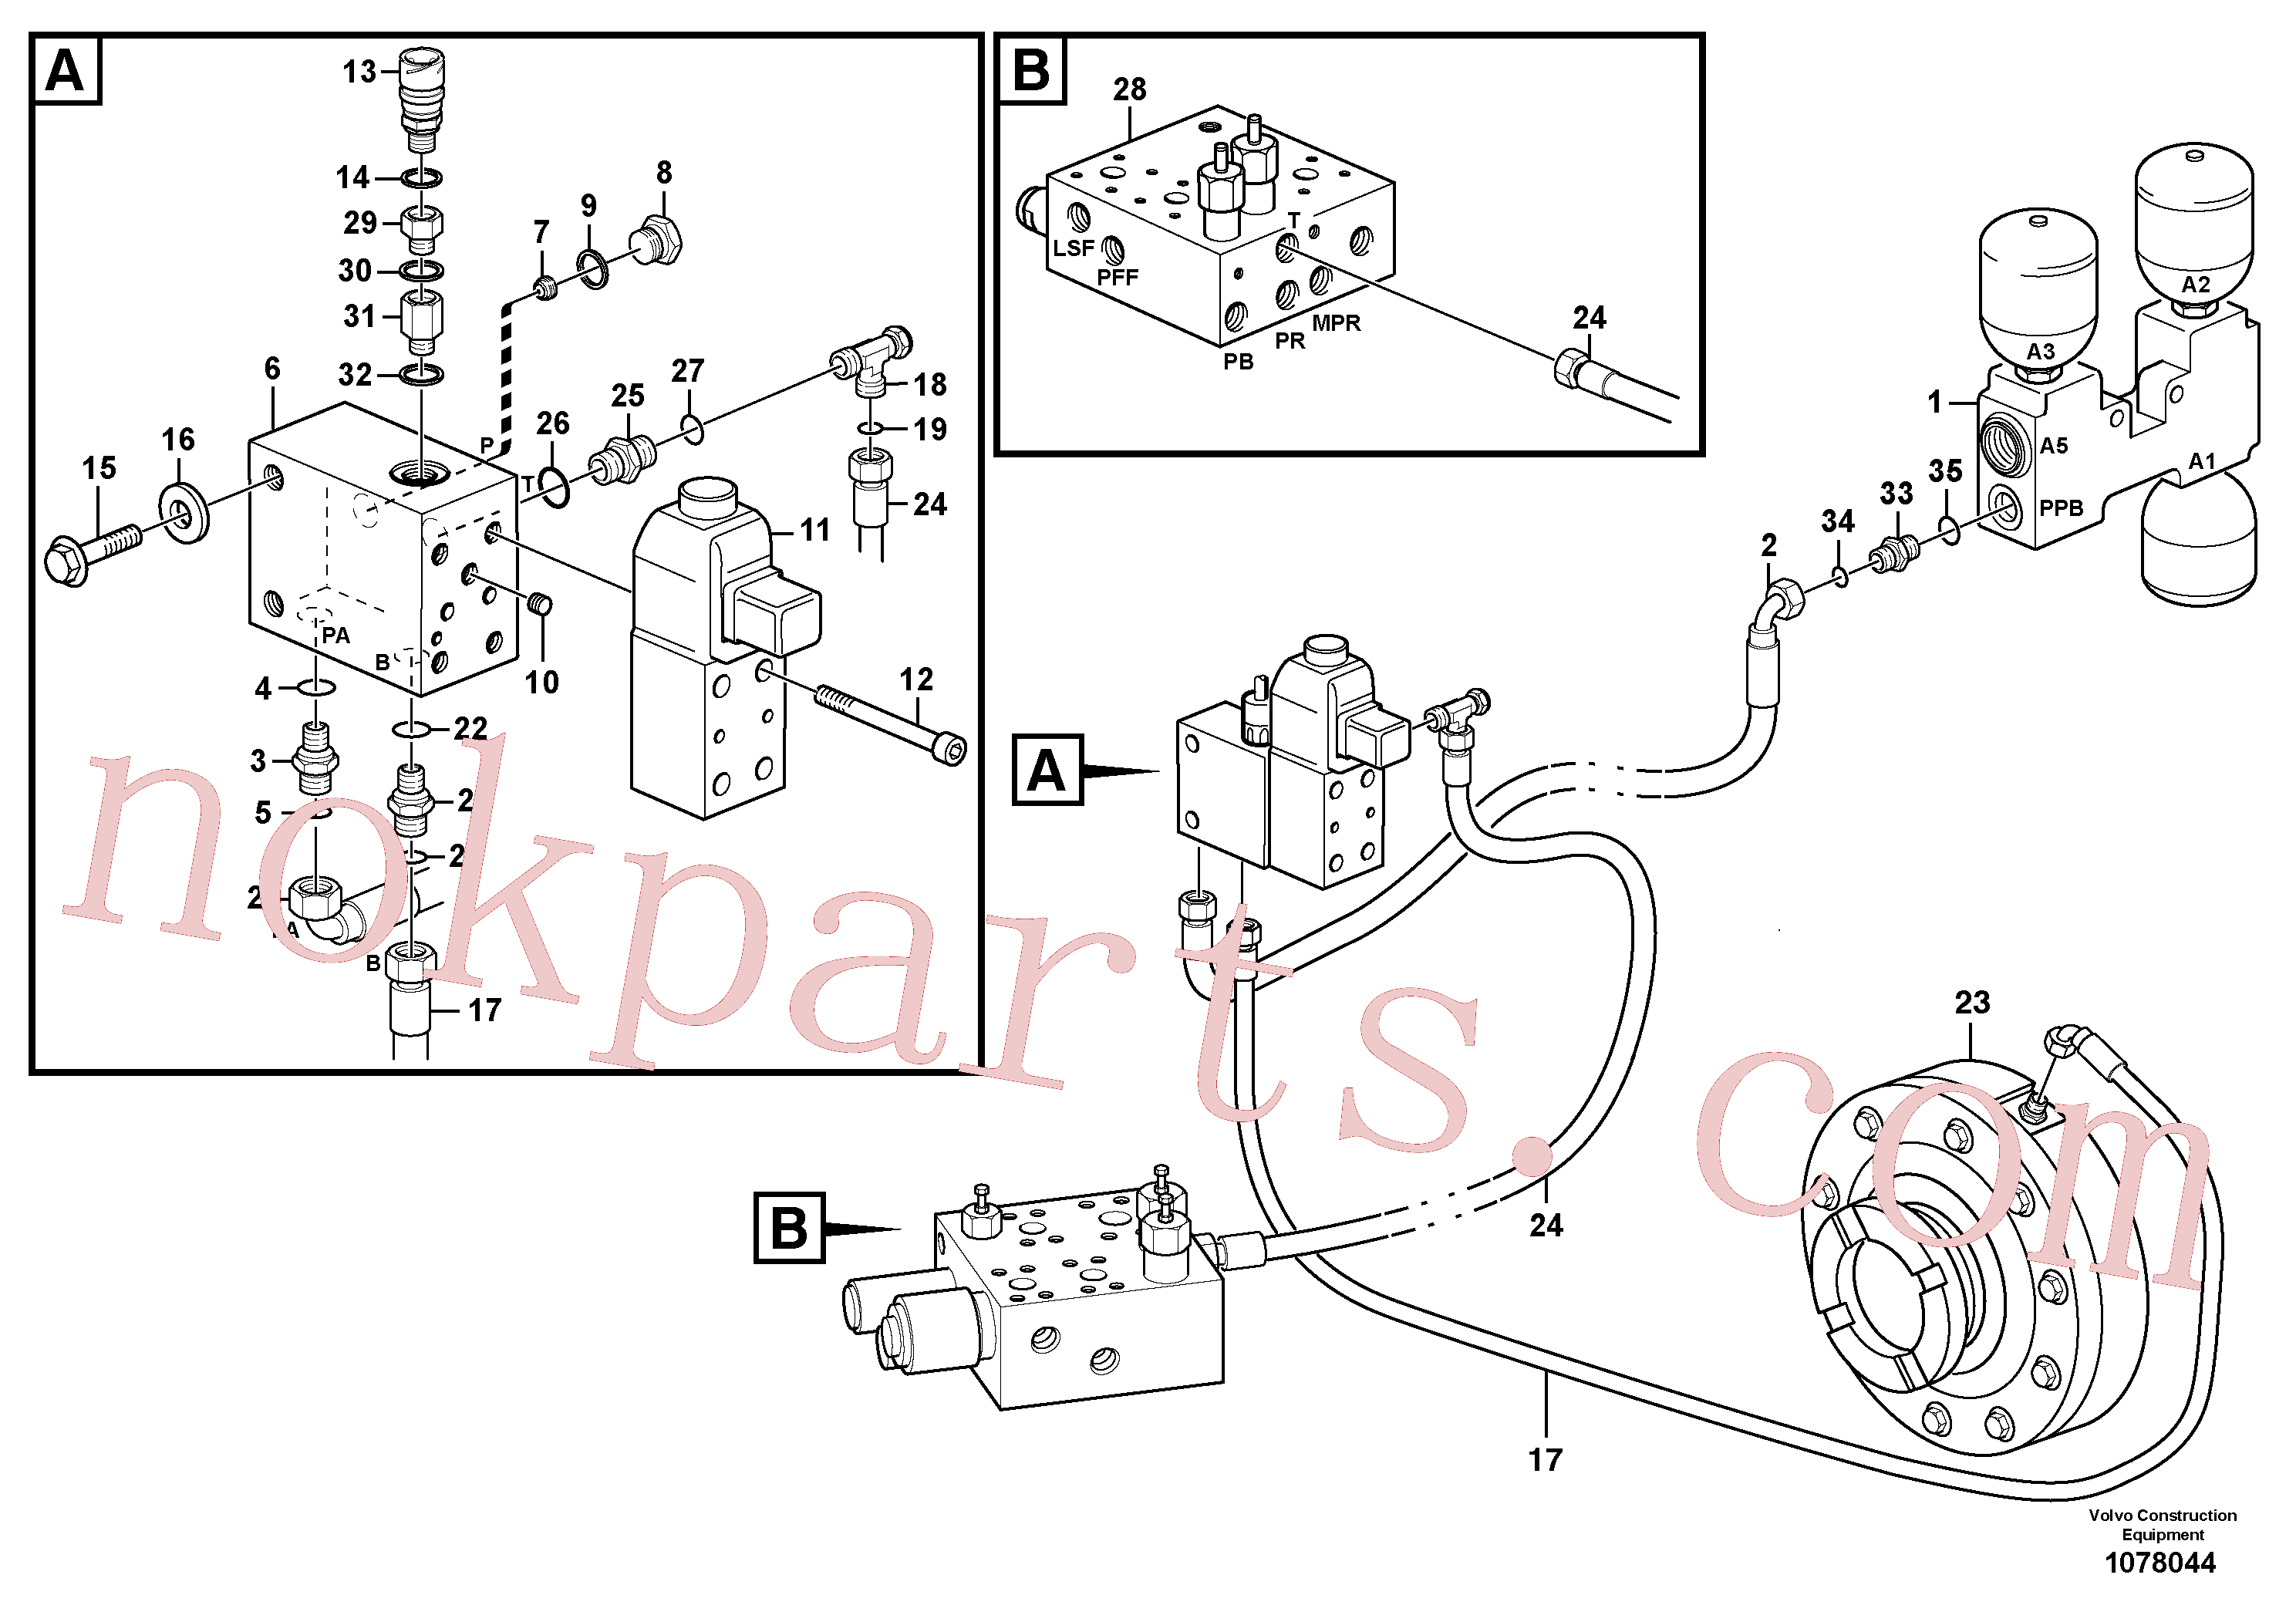 VOE11999448 for Volvo Parking brake system(1078044 assembly)